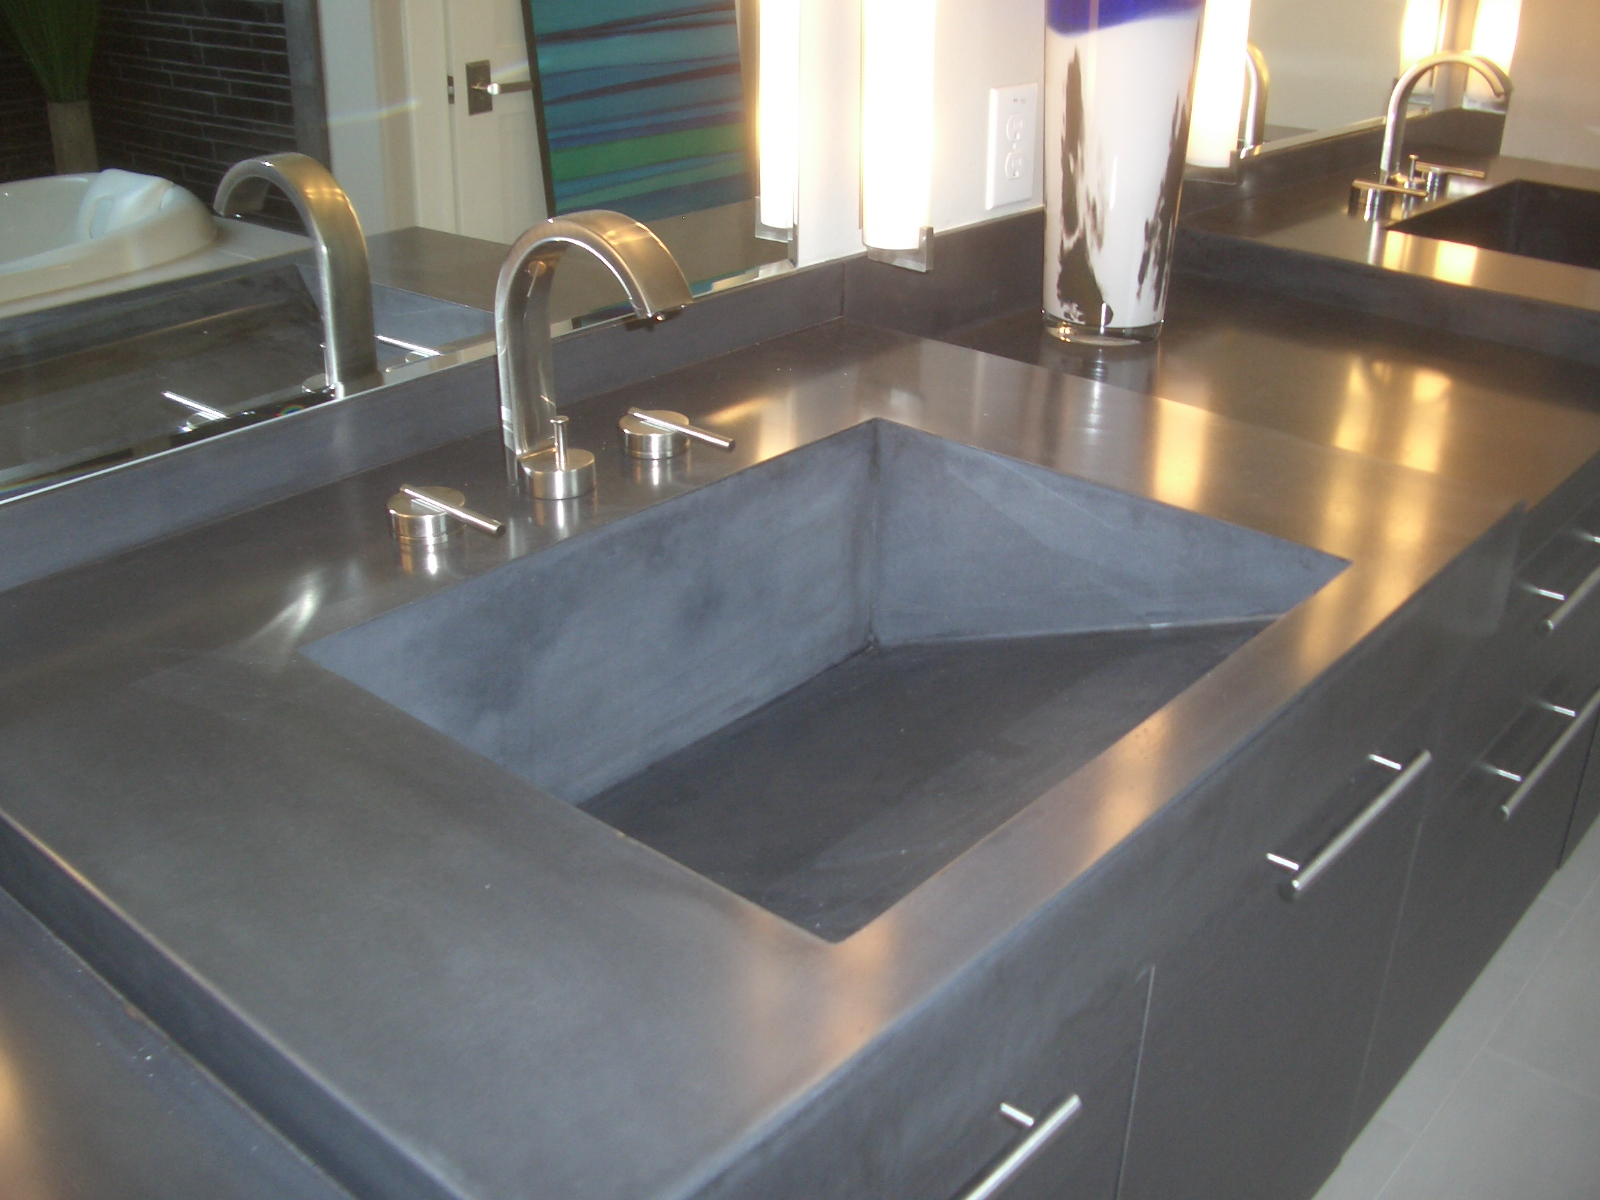 concrete kitchen countertops small remodeling ideas green countertop options house 43earth